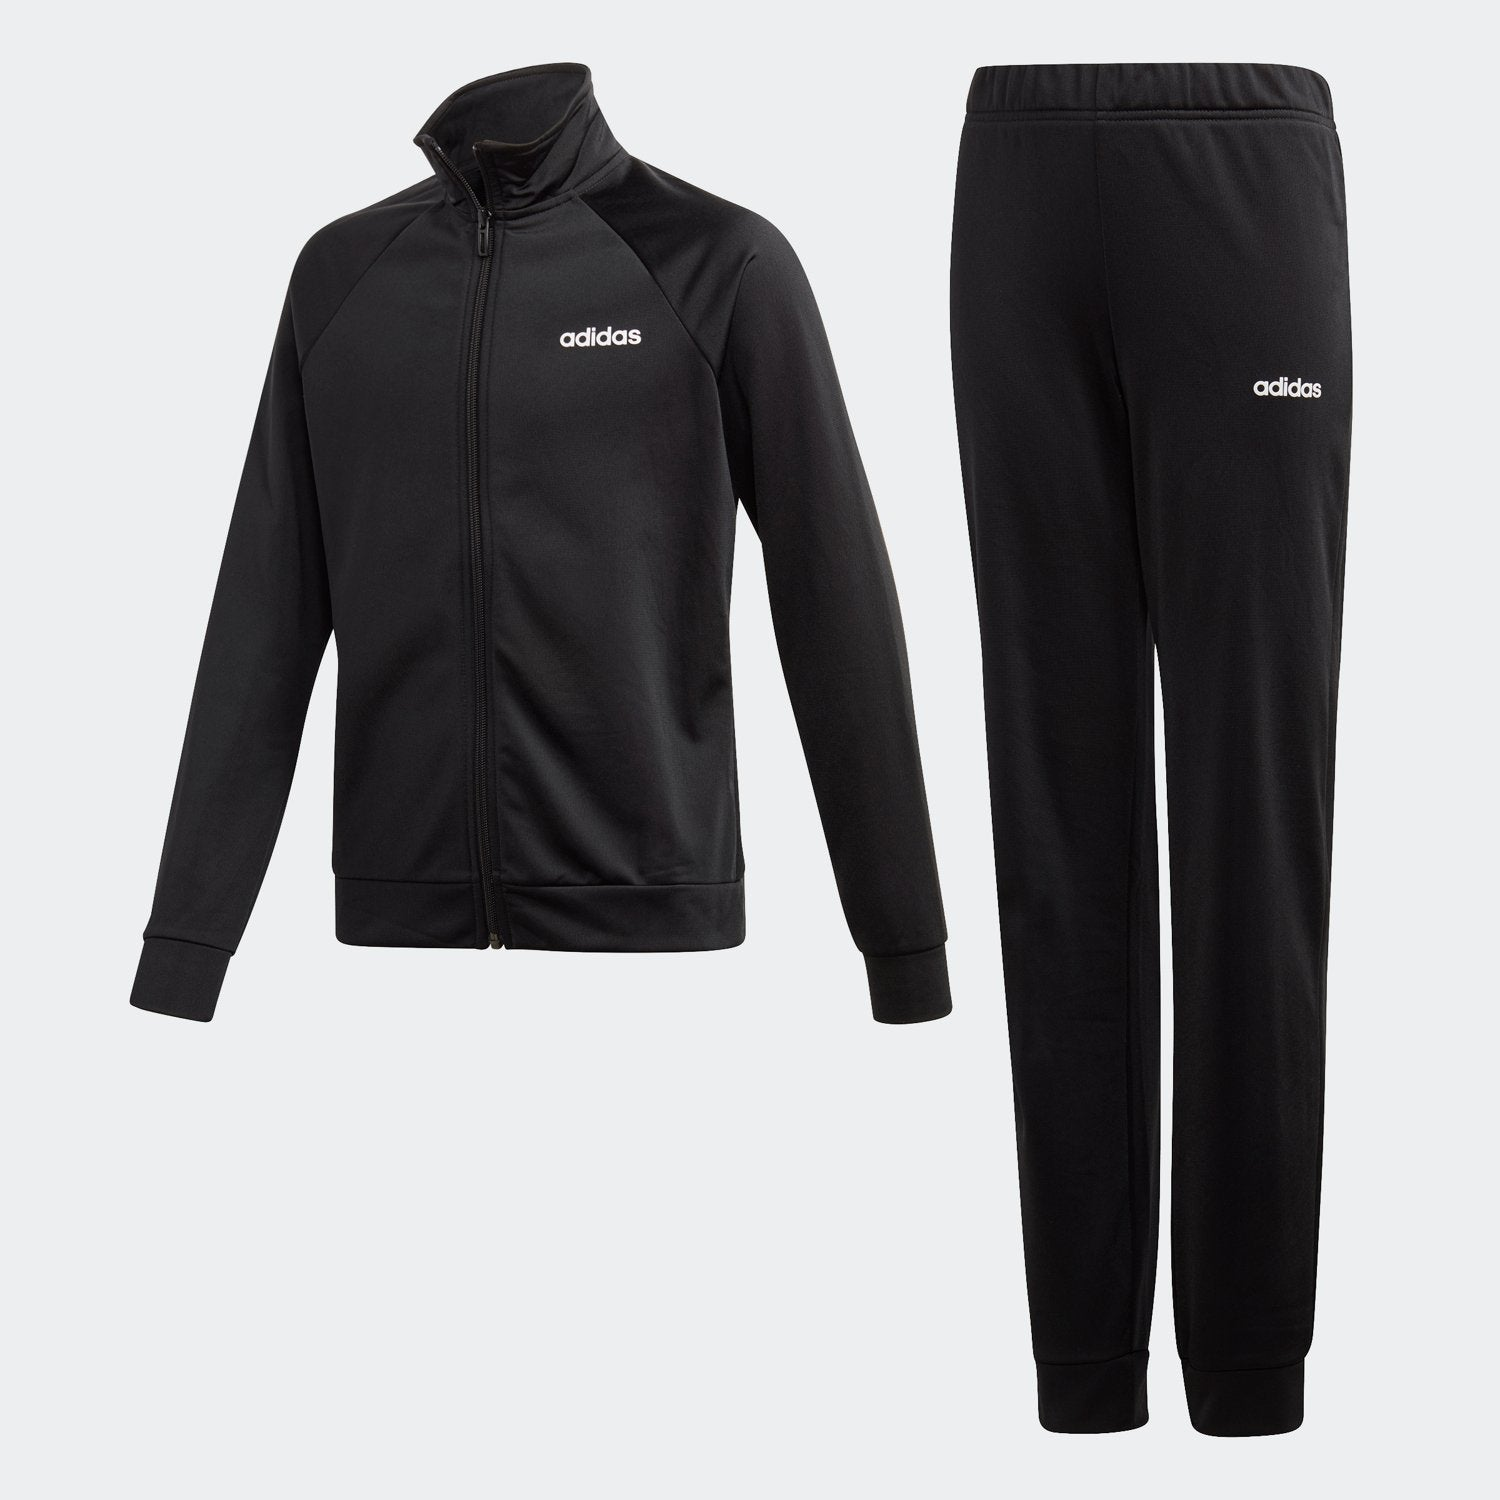 Adidas Entry Track Suit - Valley Sports UK